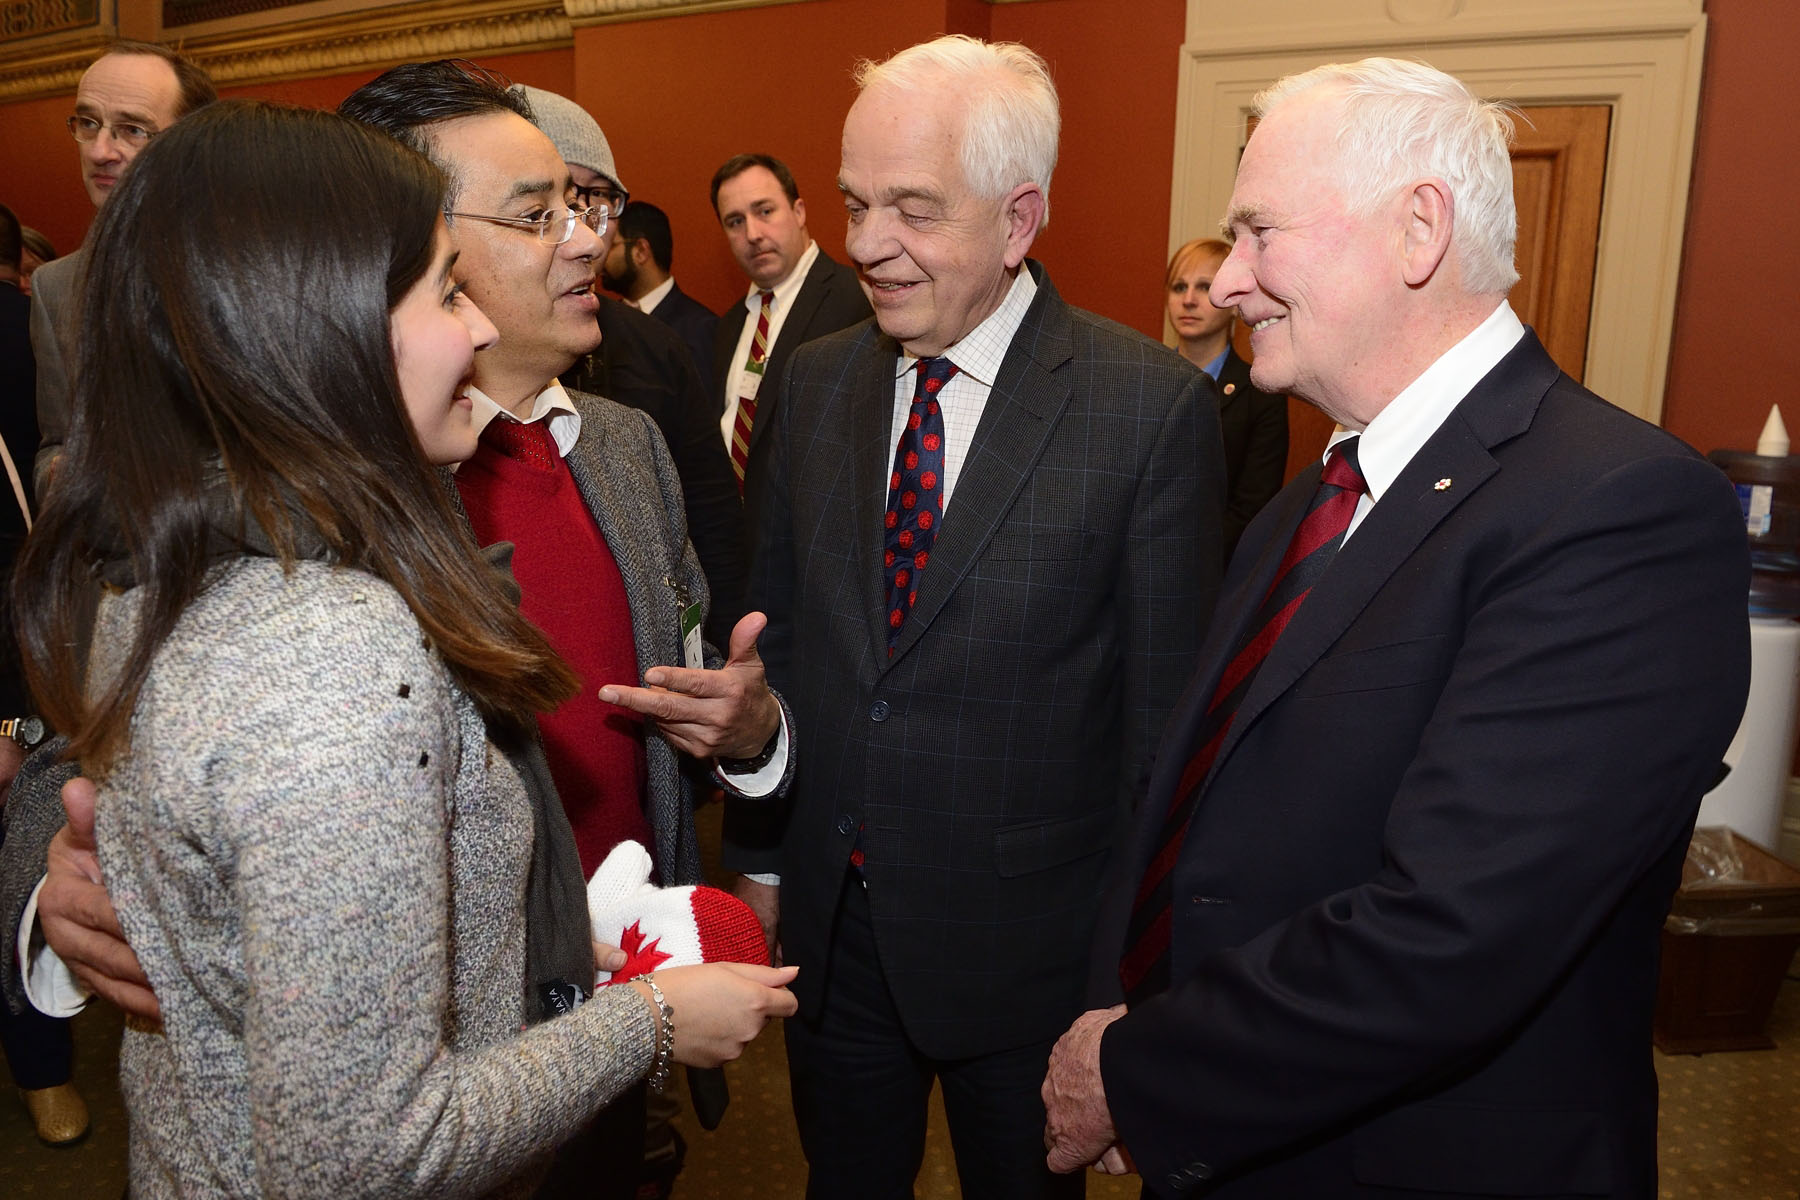 The Honourable John McCallum, Minister of Immigration, Refugees and Citizenship (middle), was in attendance.